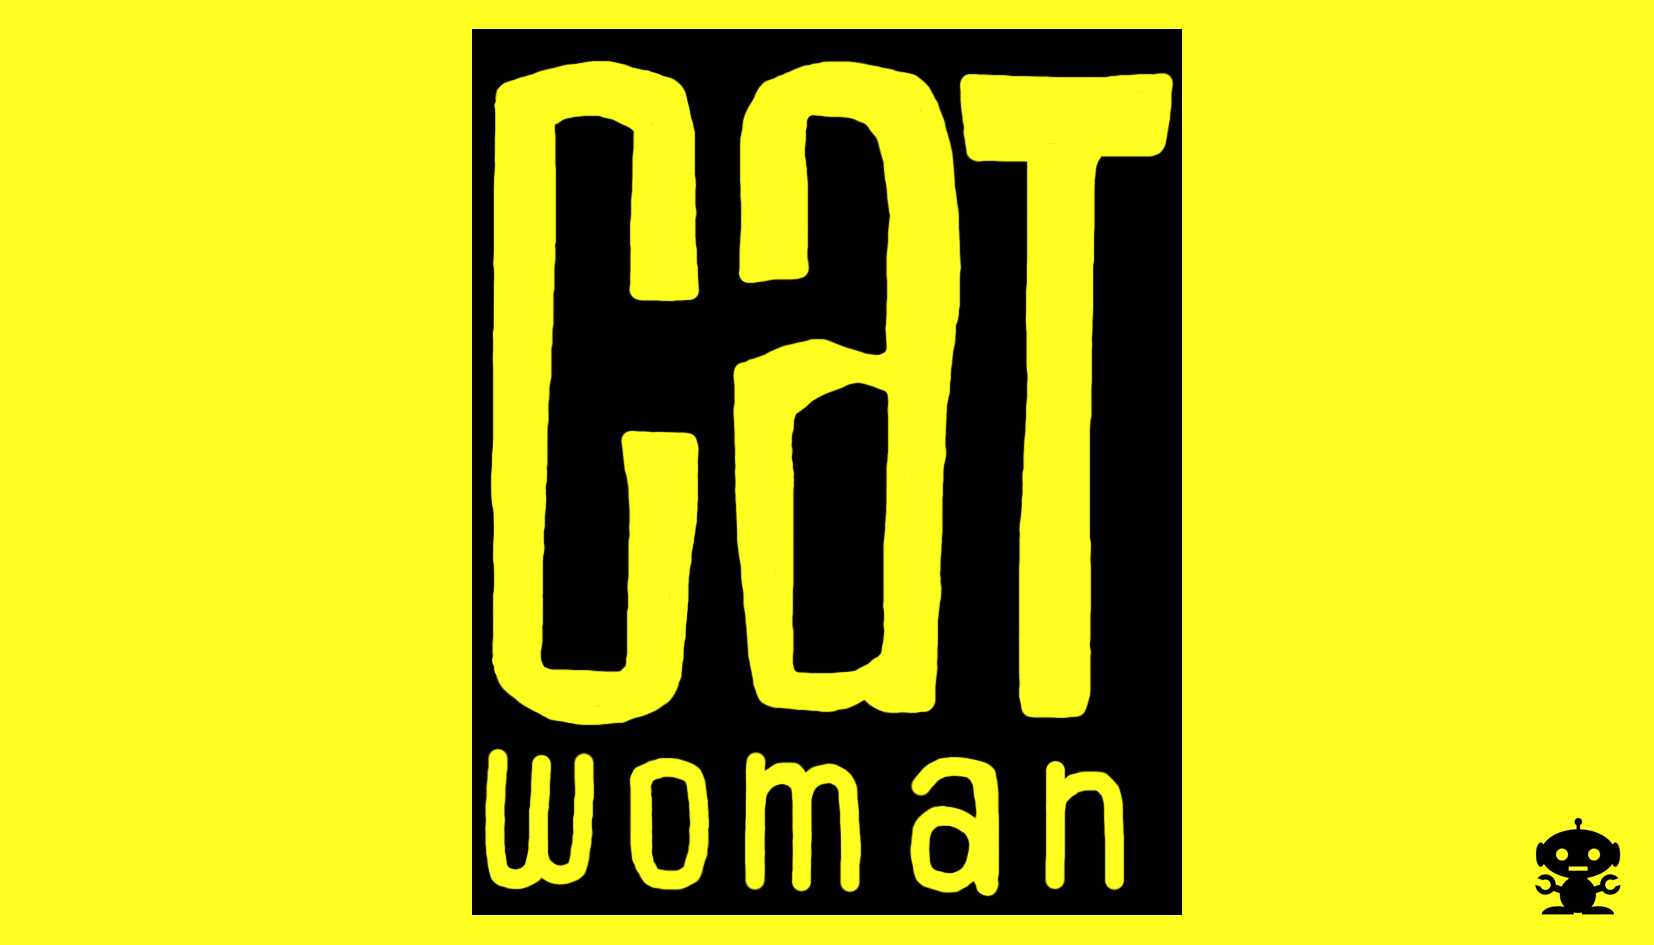 TheDorkKnightReturns 2001 Catwoman Comic Title Logo By